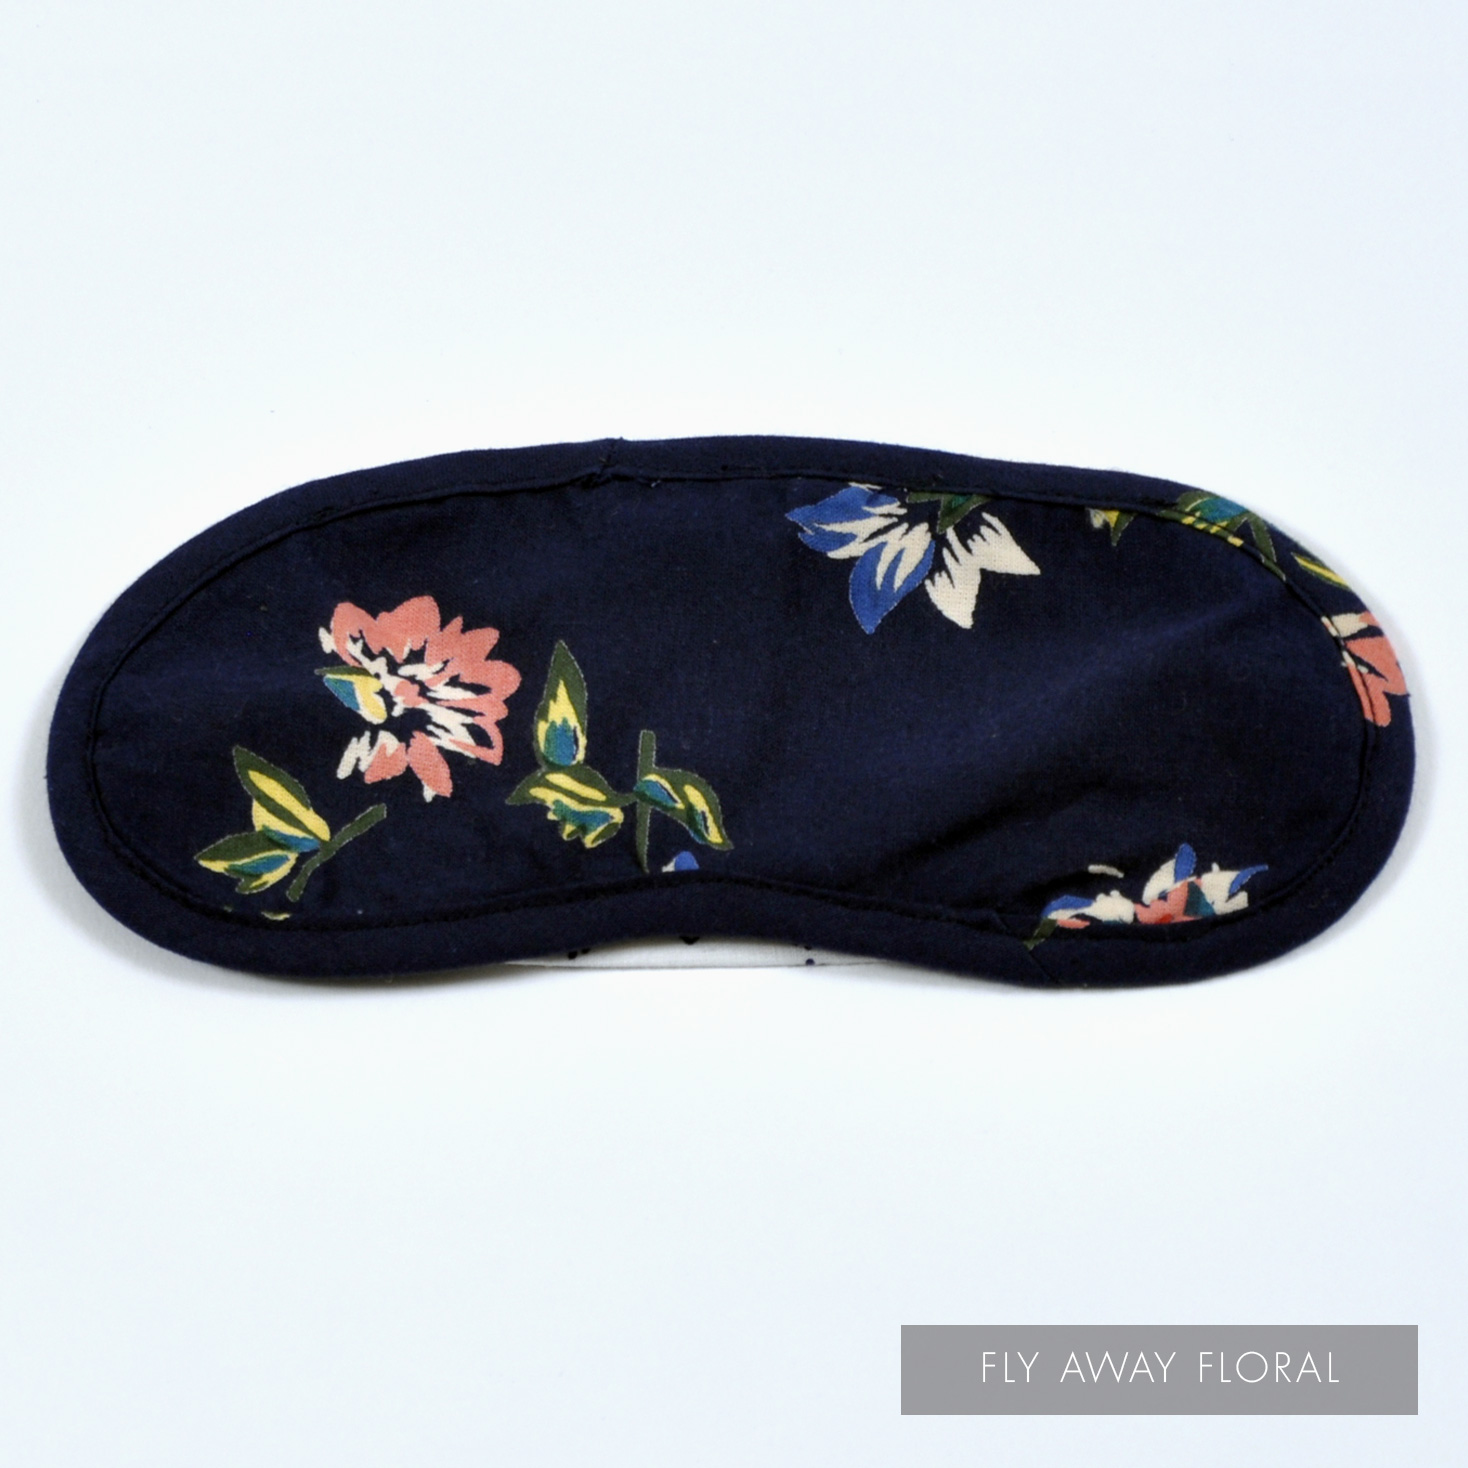 Fly Away Floral